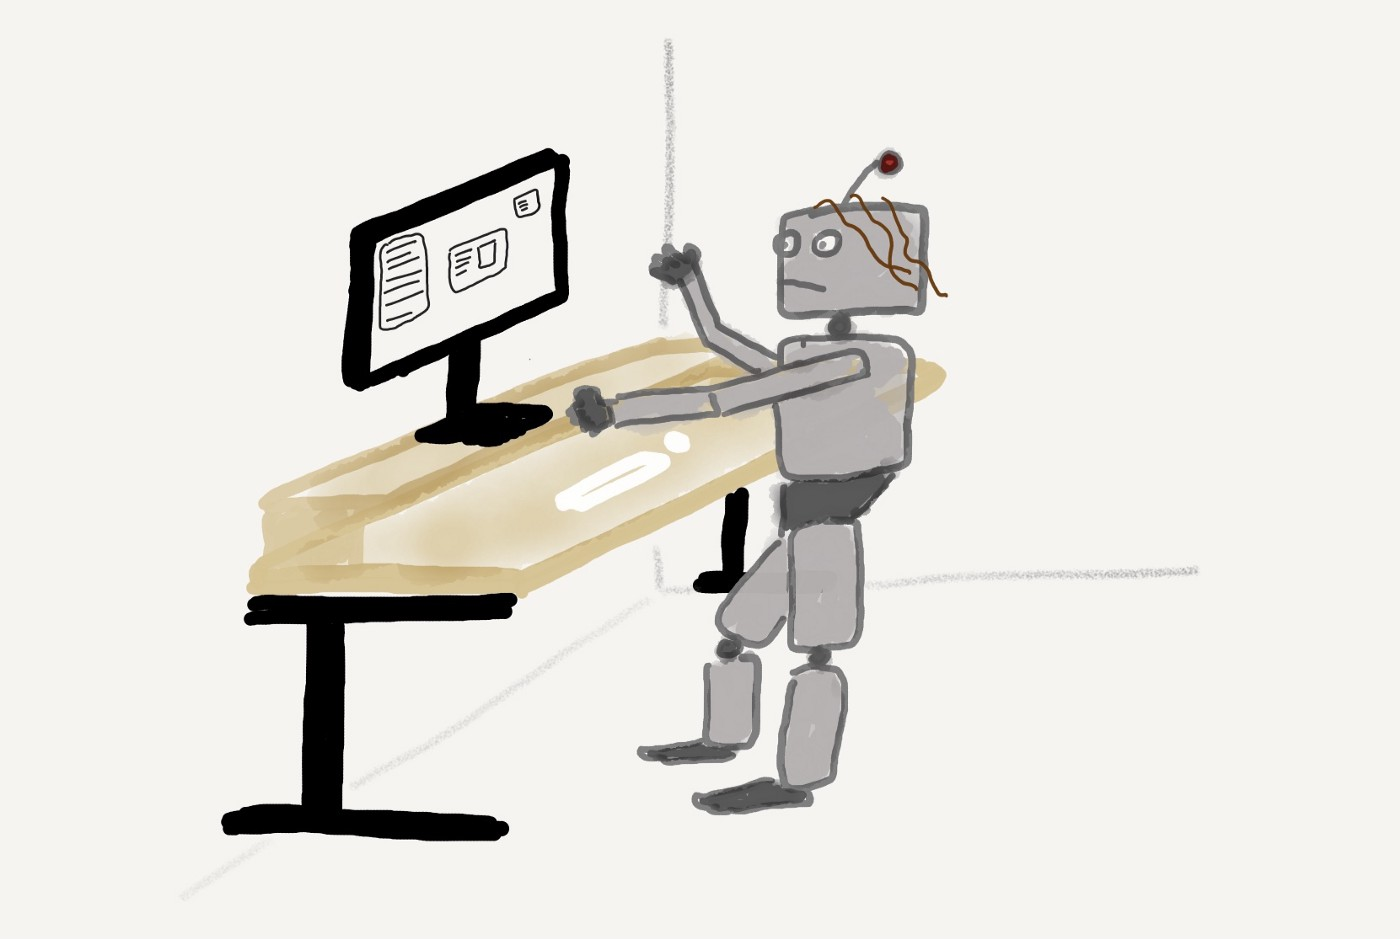 A blocky grey robot stands in front of a desk an inelegantly operates a mouse and keyboard.